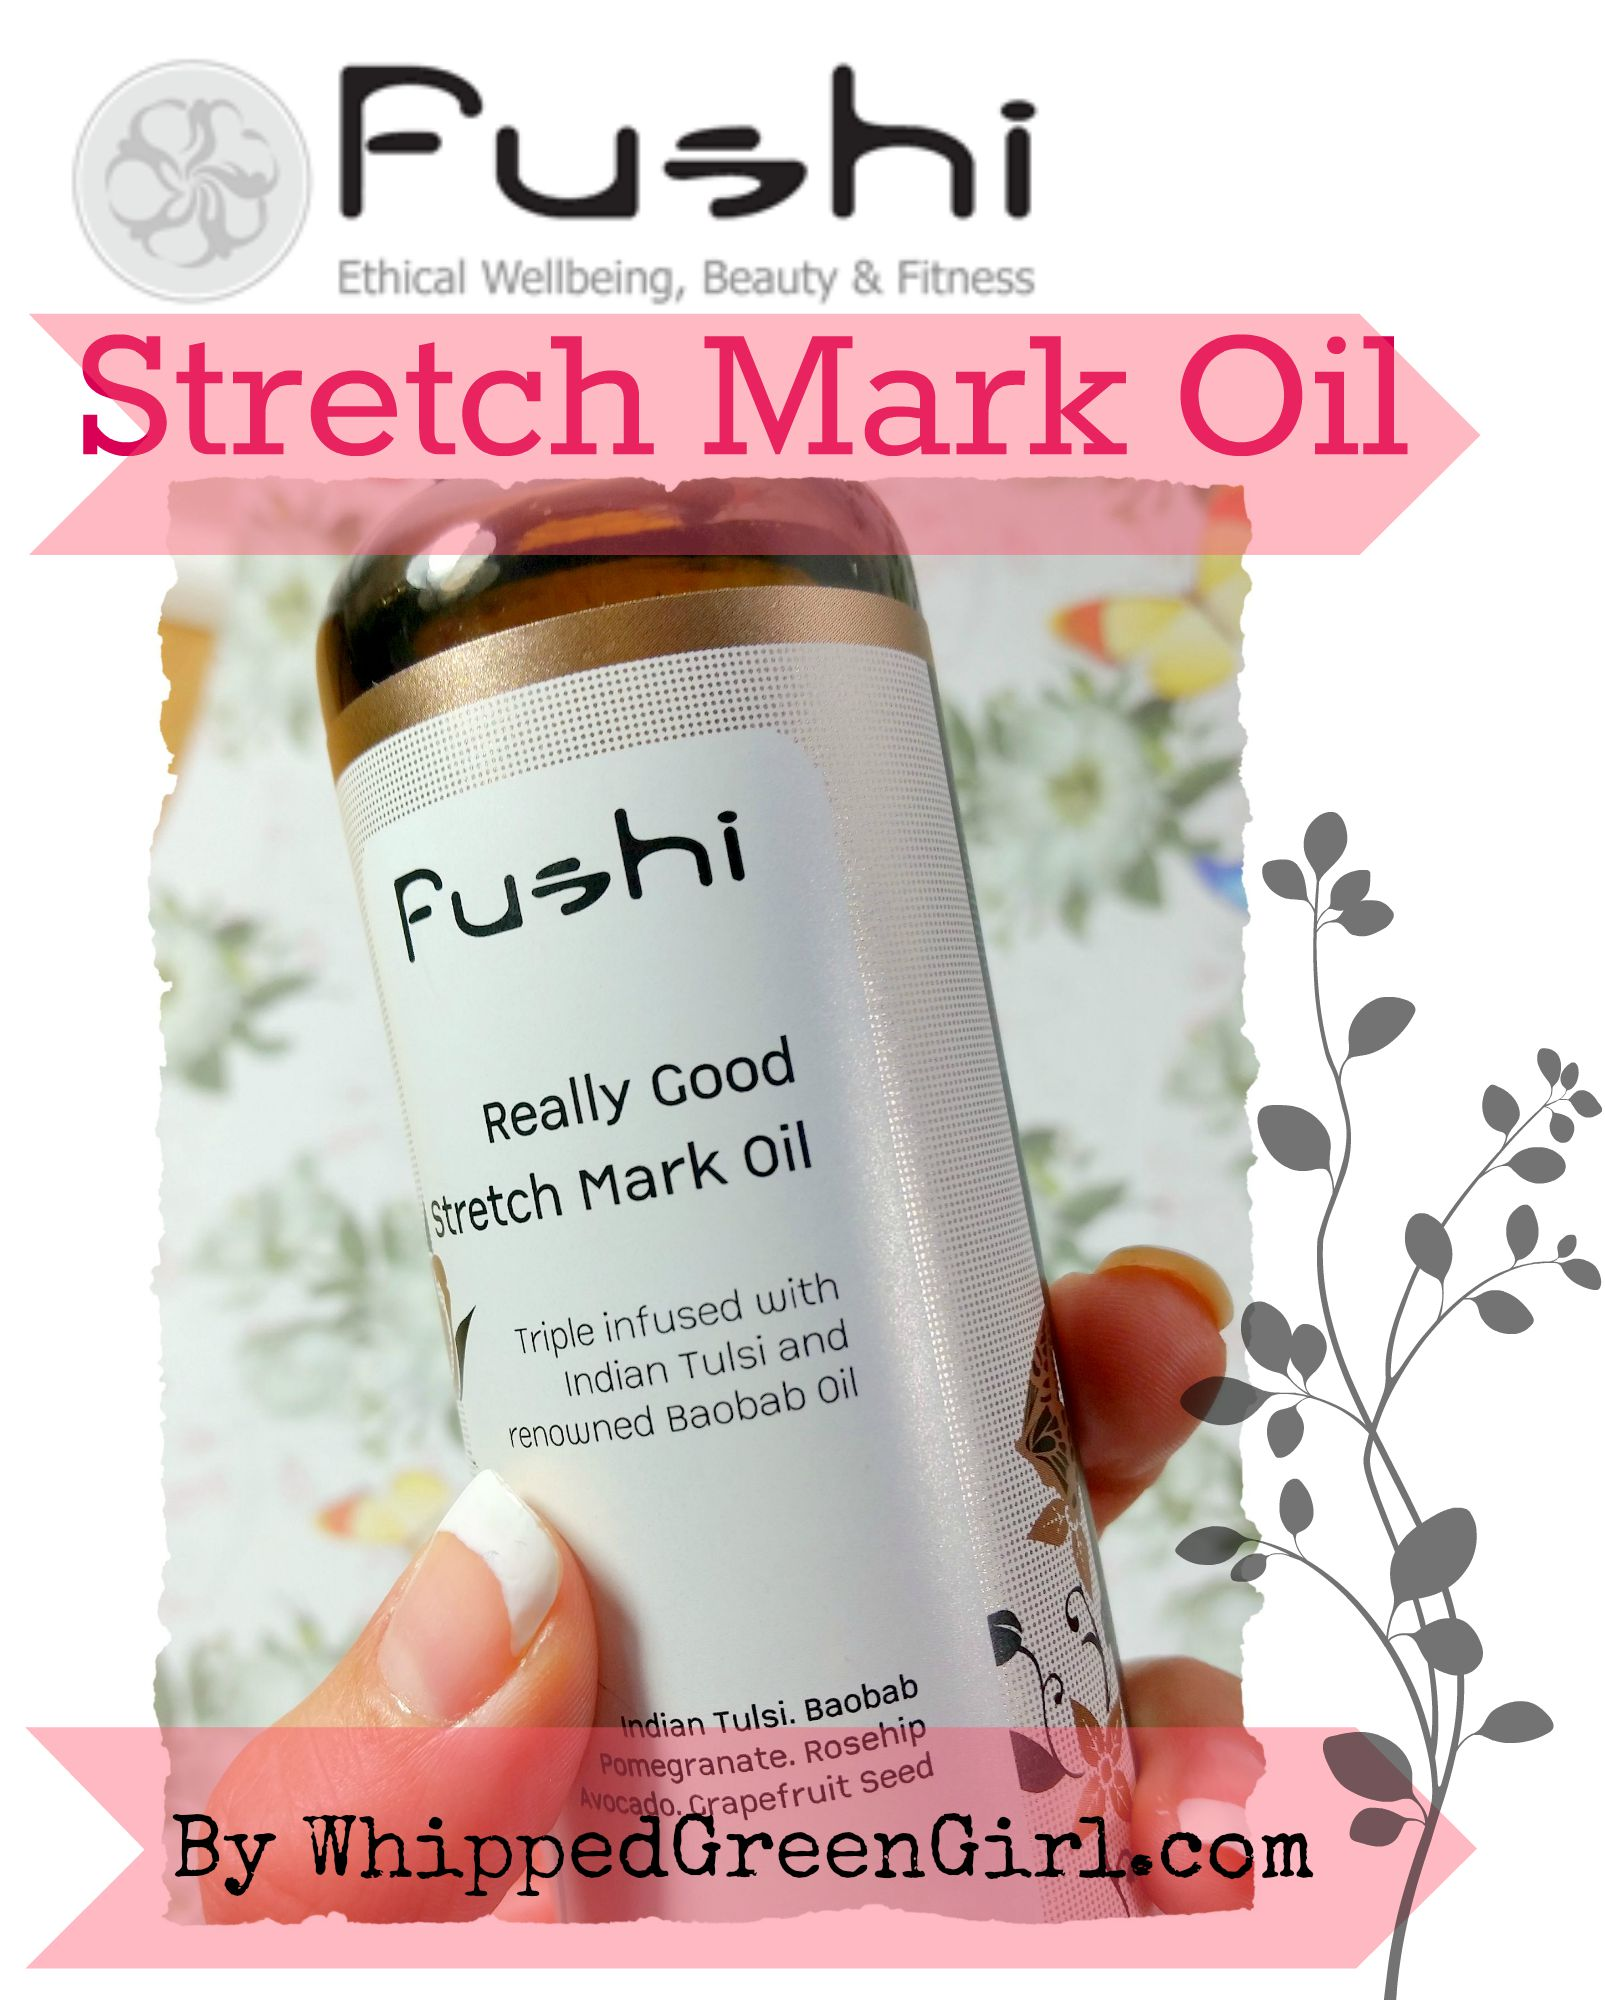 Fushi Stretch Mark Oil #REVIEW (By WhippedGreenGirl.com) #organic #skincare for #stretchmarks